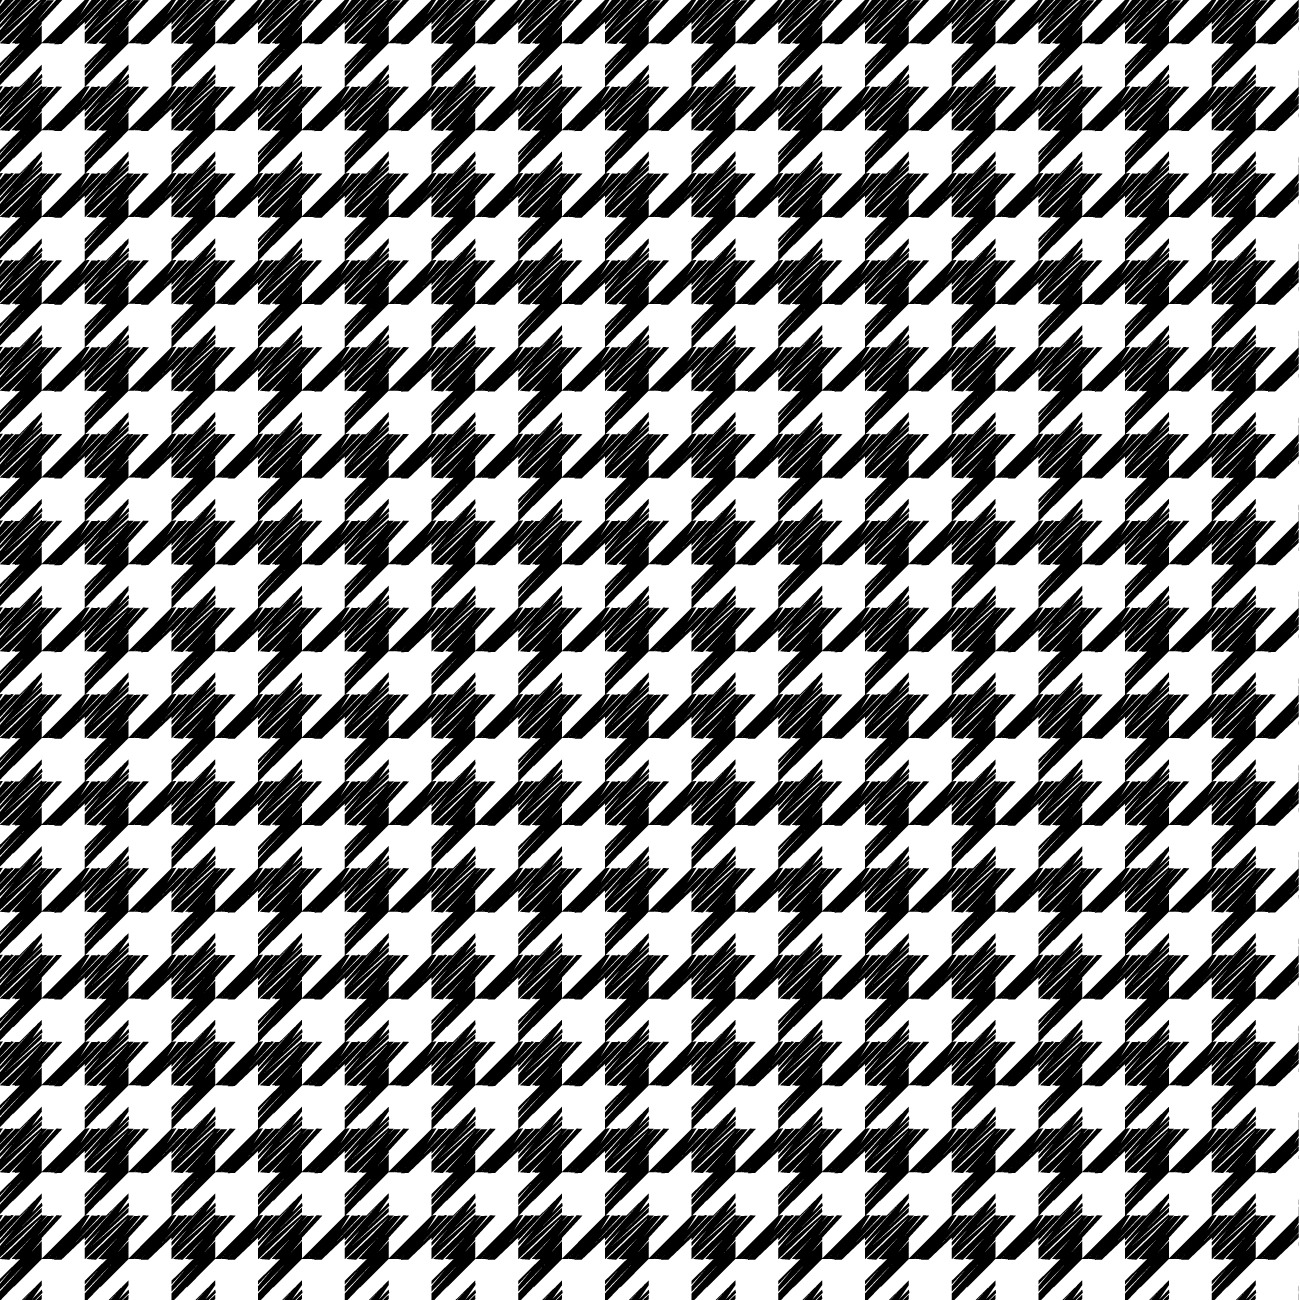 Houndstooth Seamless Vector Patterns